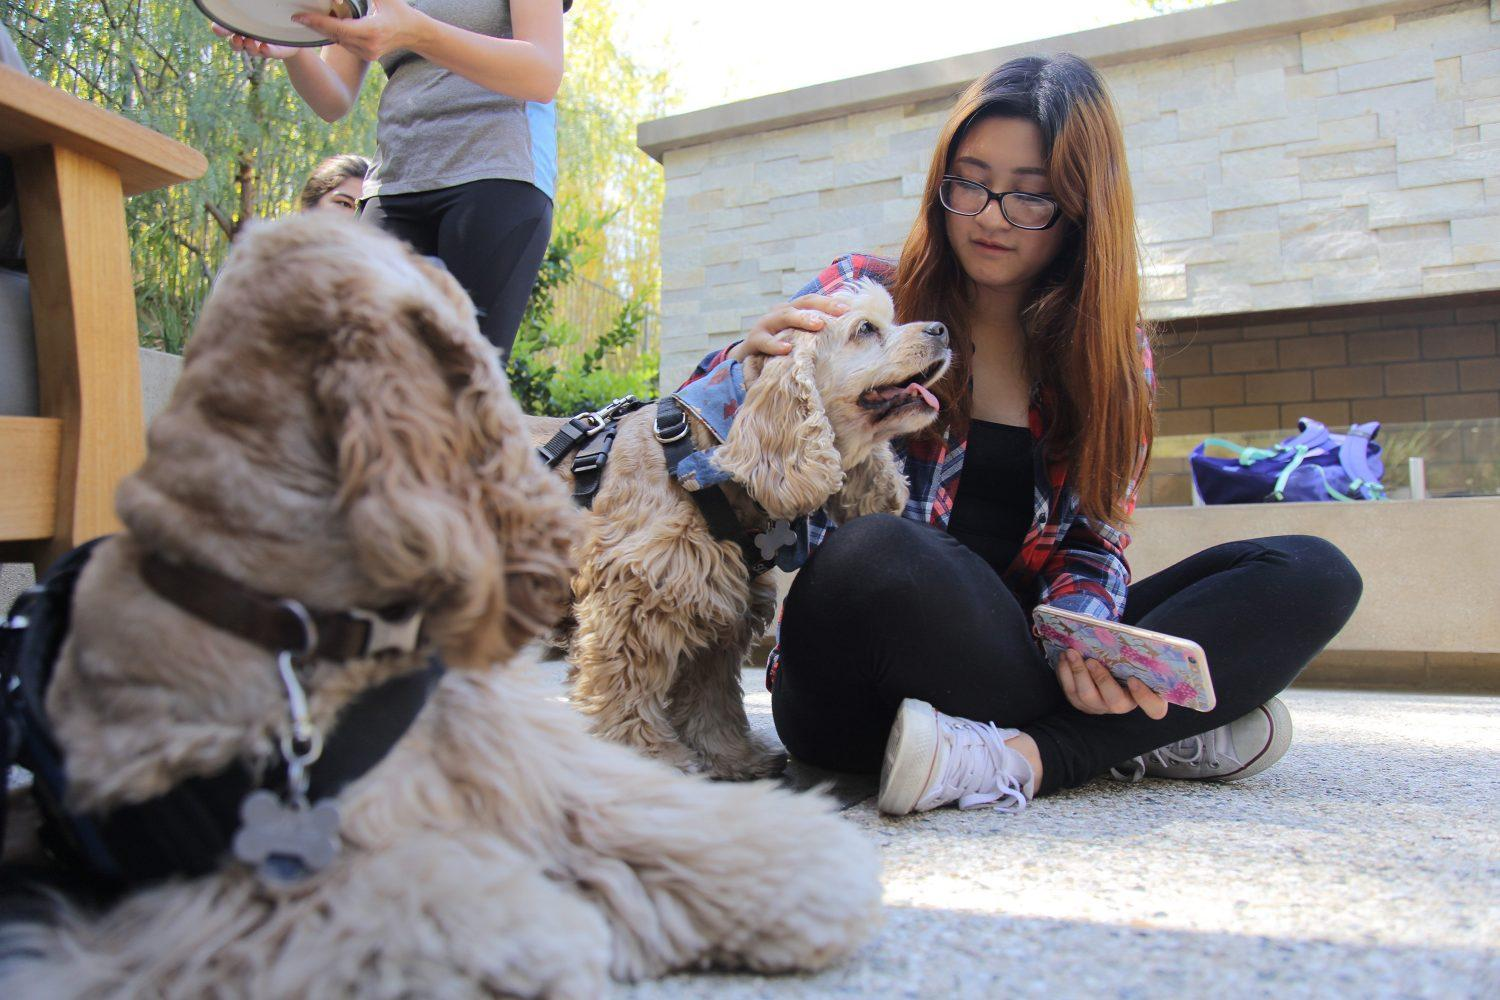 Christina+Lee%2C+freshman+journalism+major%2C+visited+The+Oasis+Wellness+Center+Tuesday+afternoon+to+pet+the+therapy+dogs.+%28Magaly+Barajas%2FThe+Sundial%29